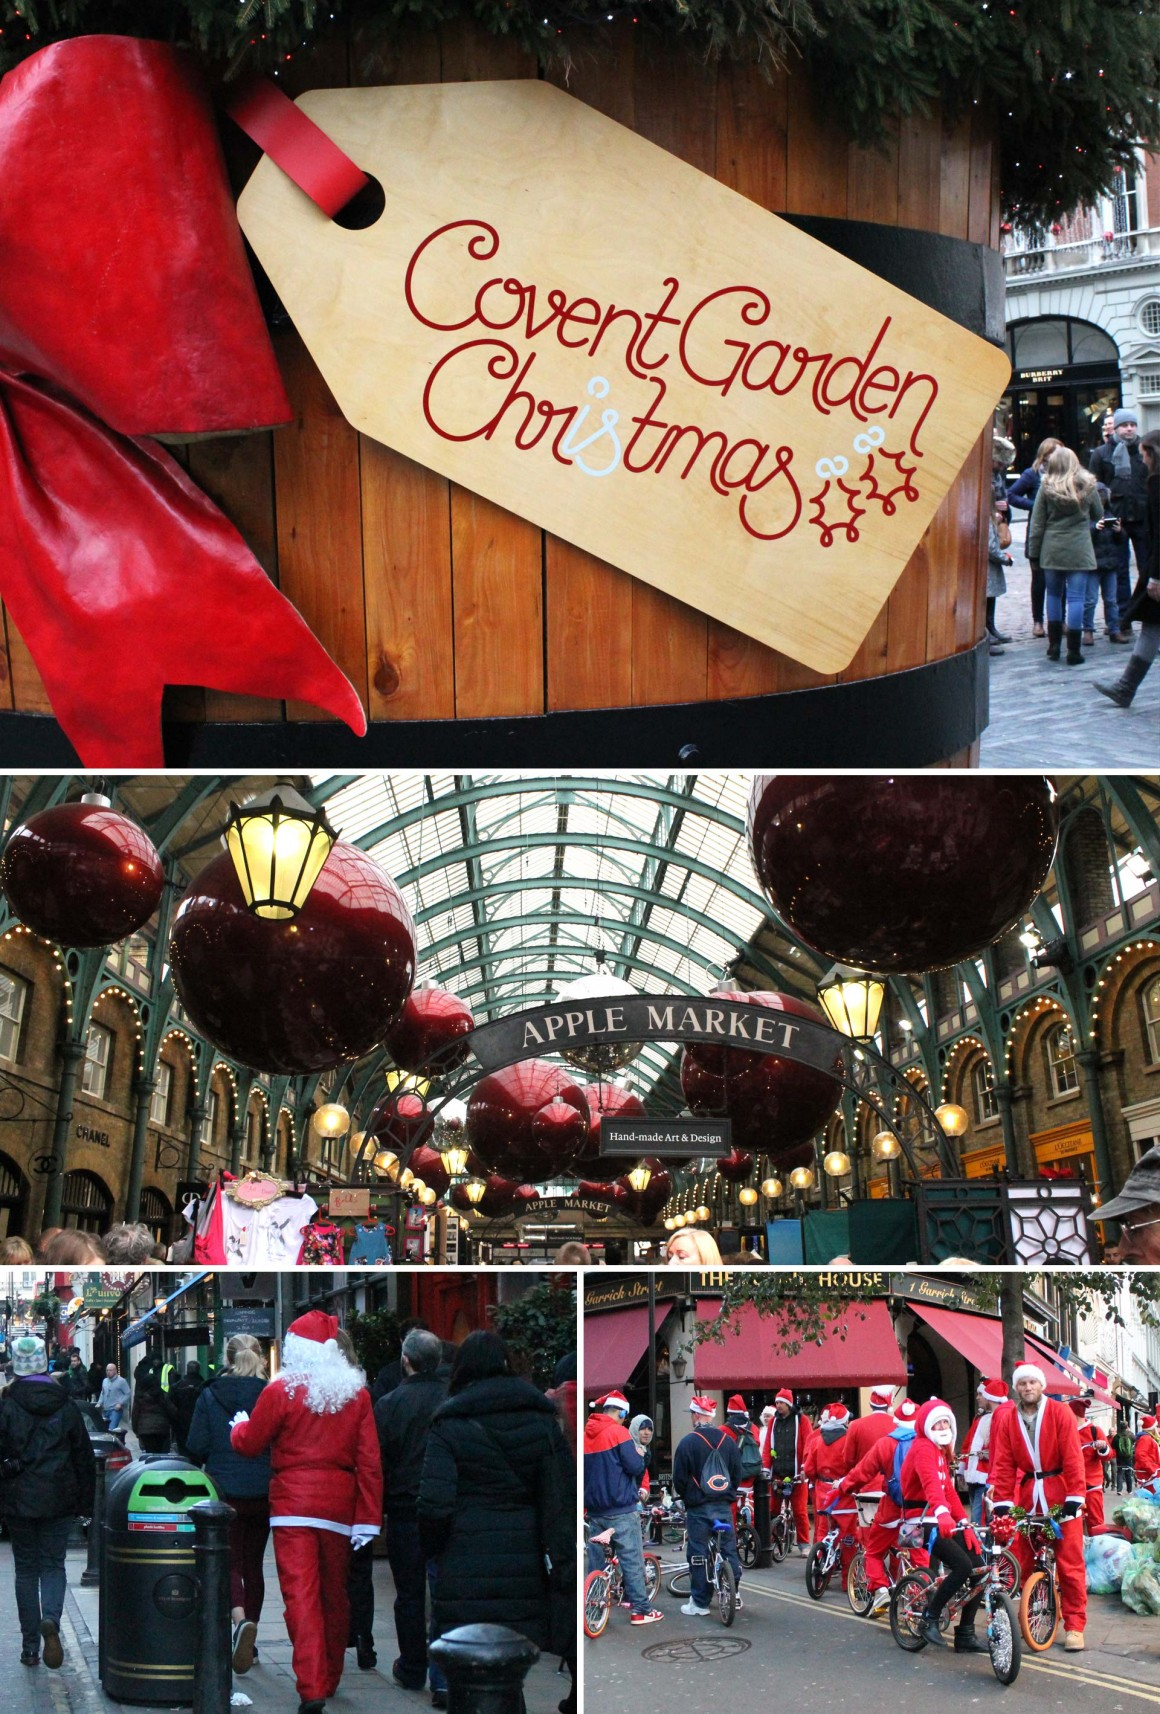 Verticale_Londra_a_Natale_Covent_Garden_1